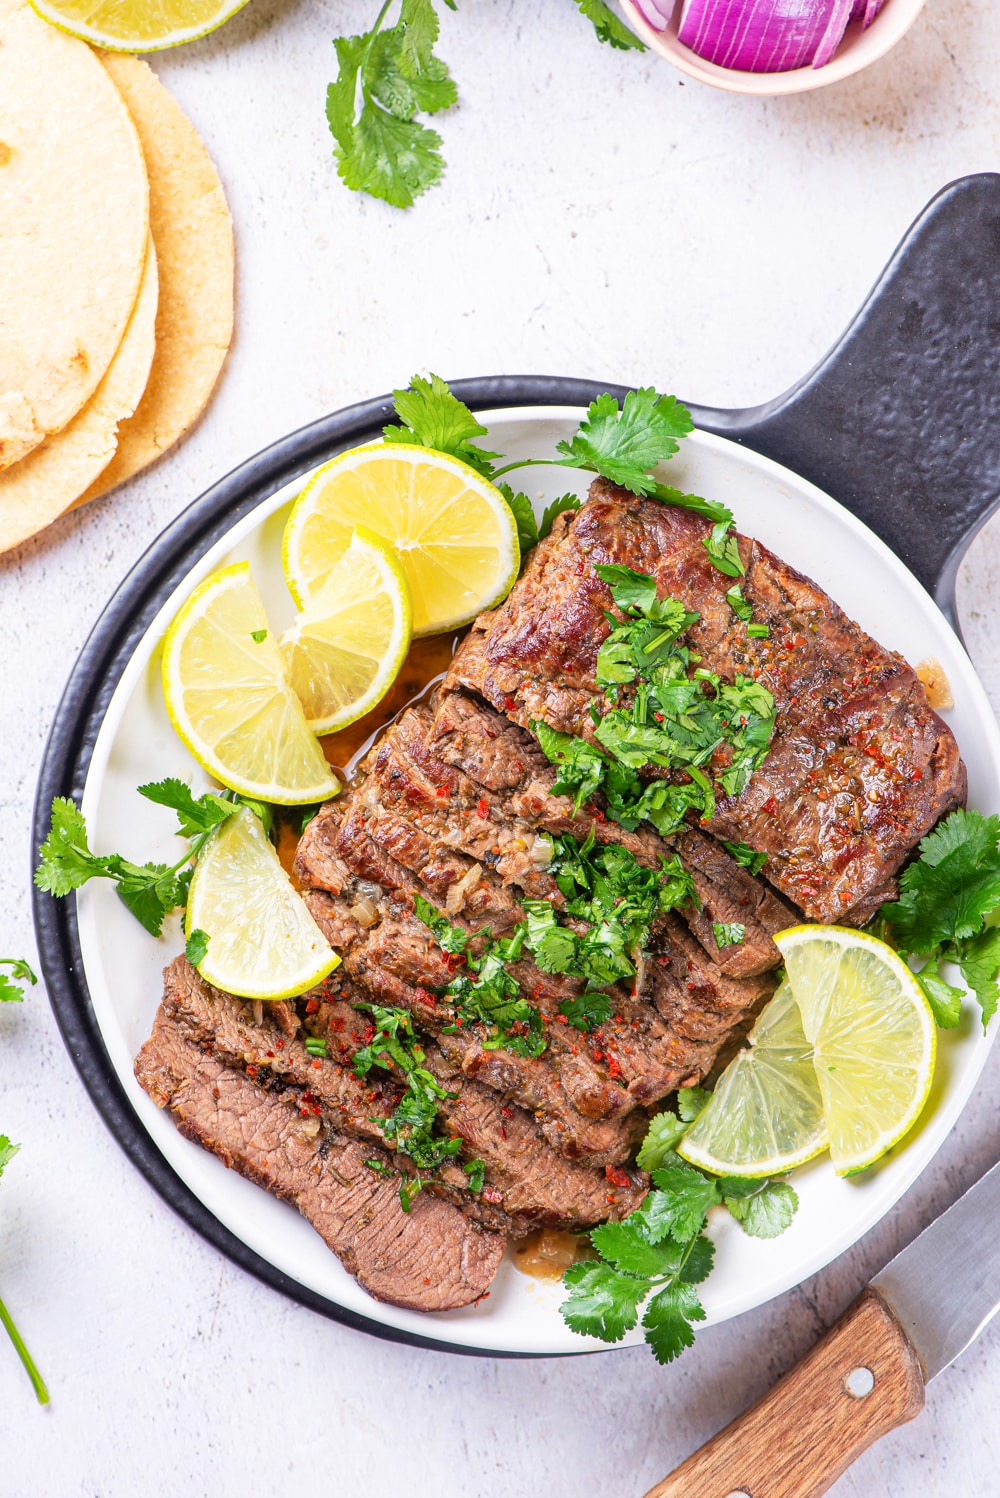 Cooked flank steak on a plate.